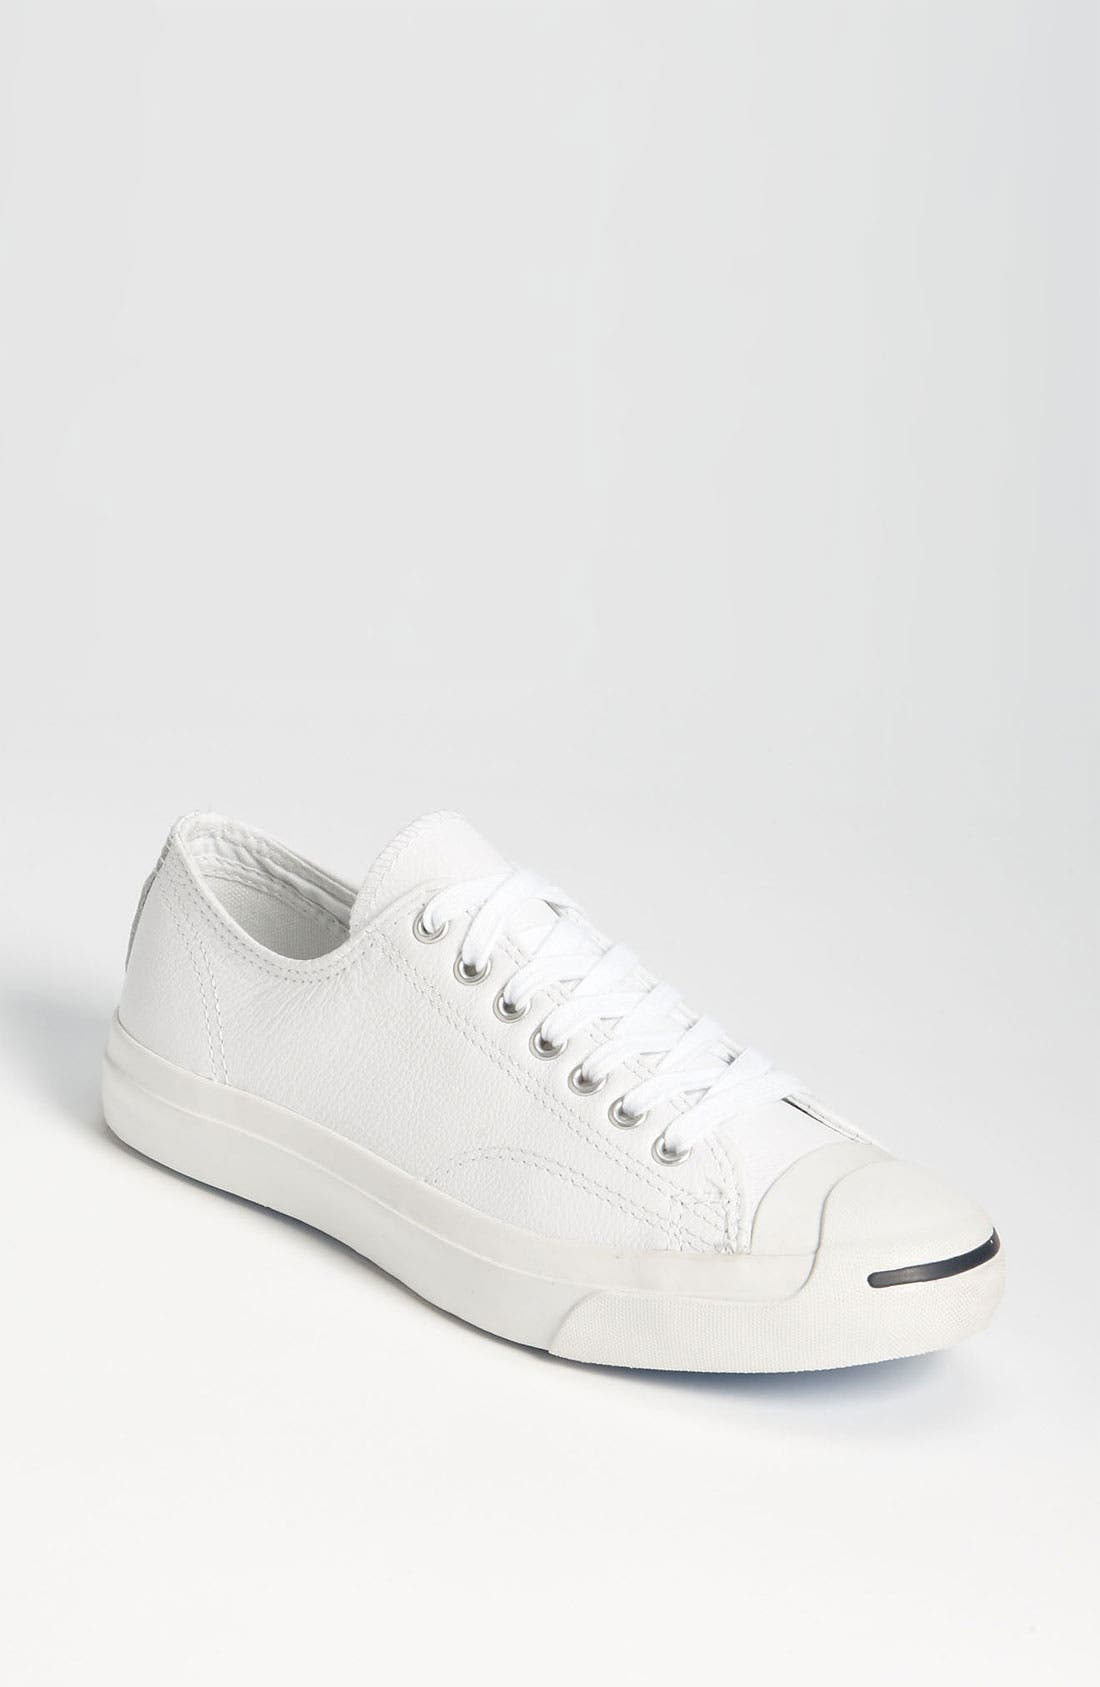 'Jack Purcell' Leather Sneaker,                         Main,                         color, WLE